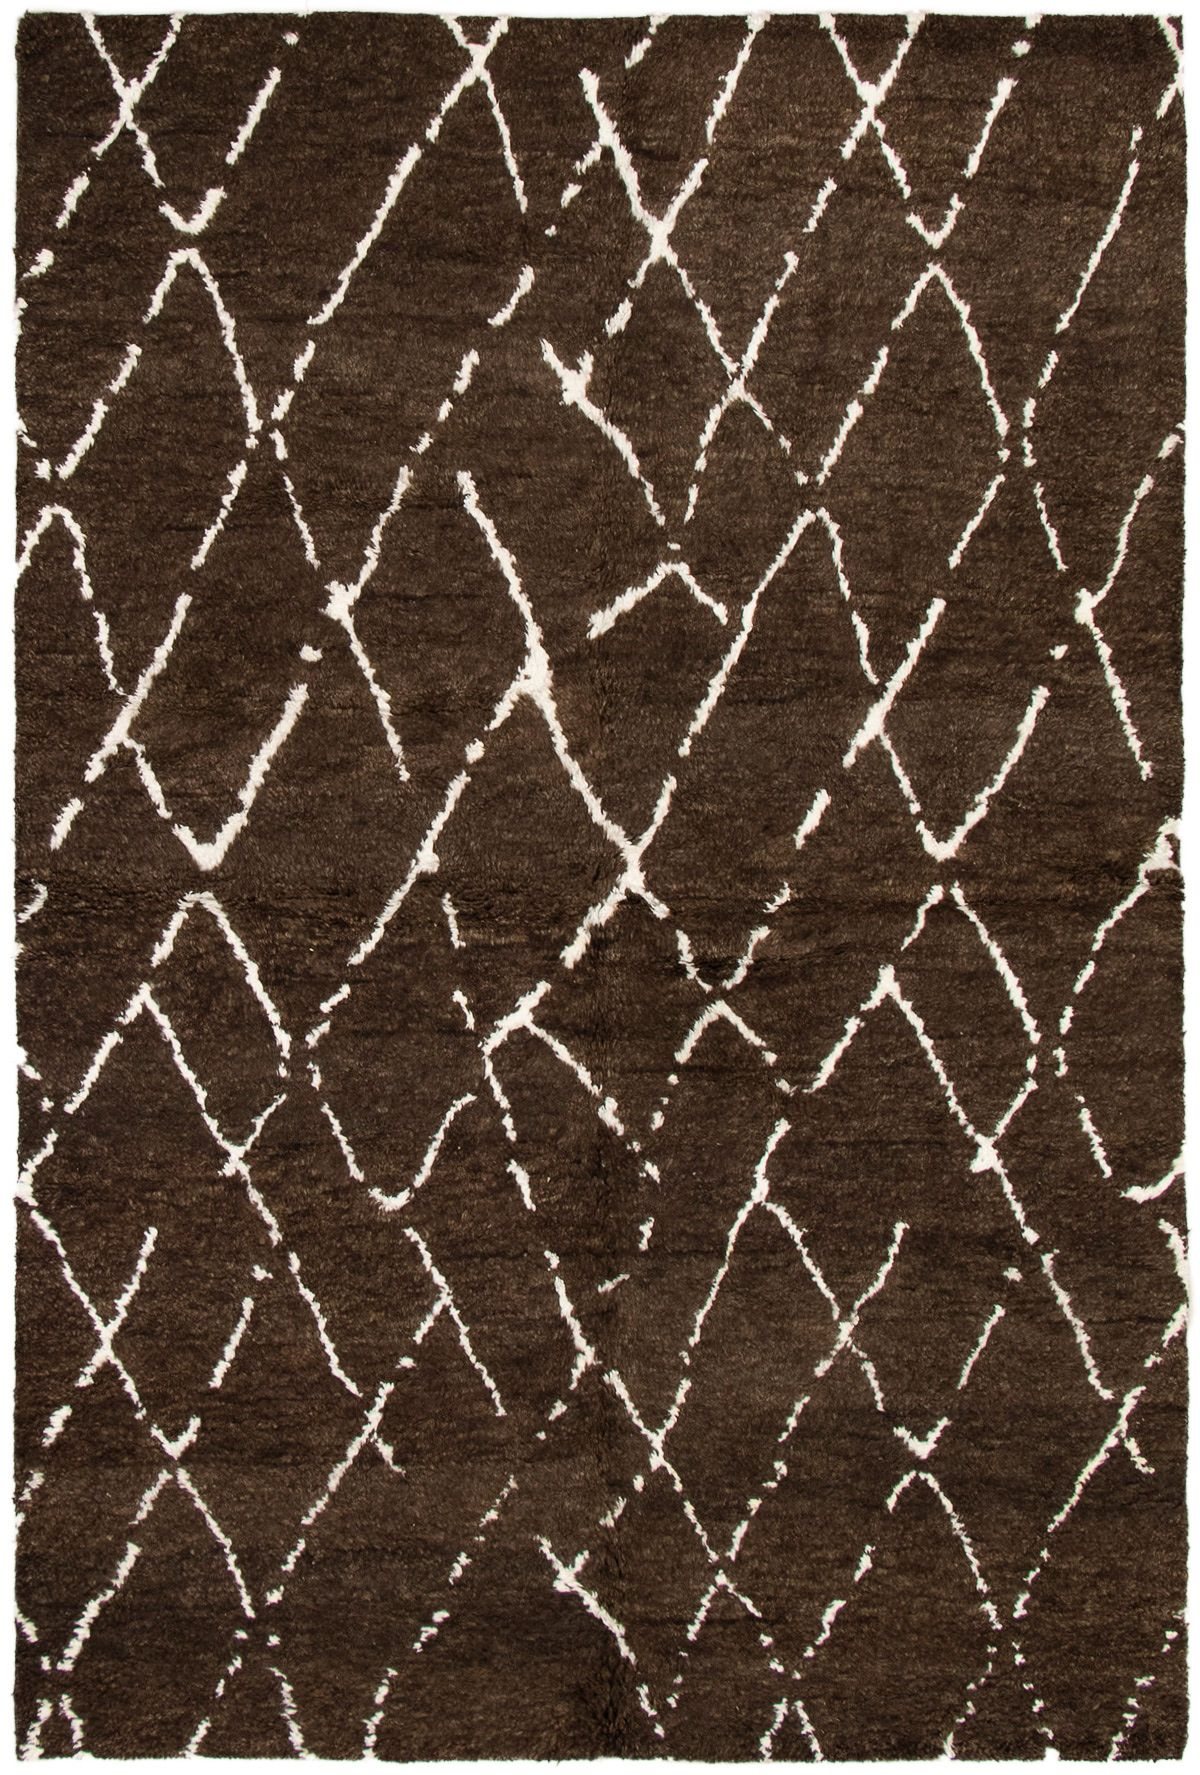 "Hand-knotted Arlequin Dark Brown Wool Rug 6'0"" x 9'0""  Size: 6'0"" x 9'0"""